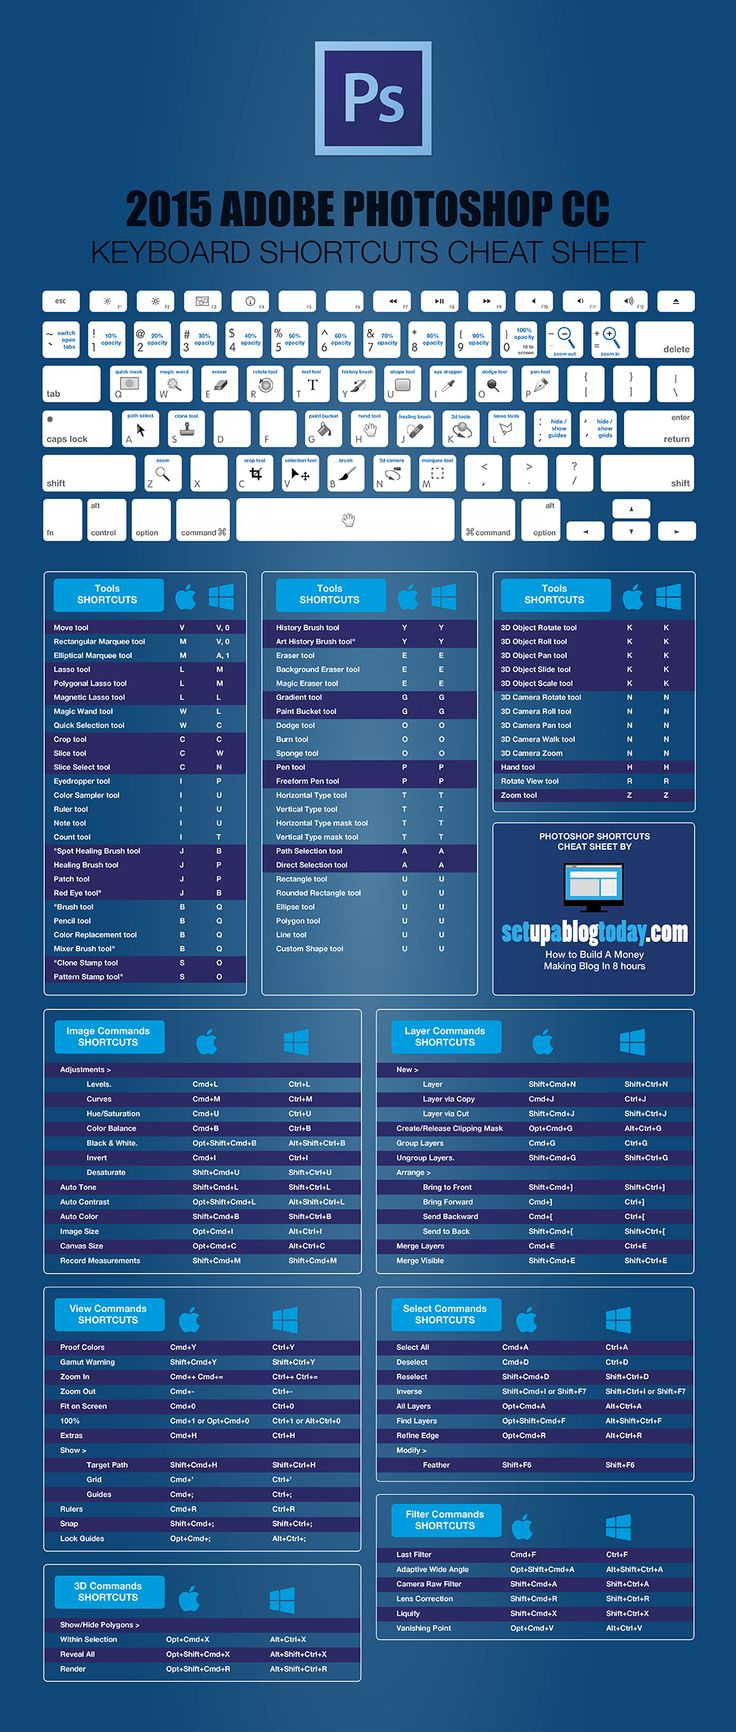 2015 Adobe Photoshop Keyboard Shortcuts Cheat Sheet #infographic #Photoshop